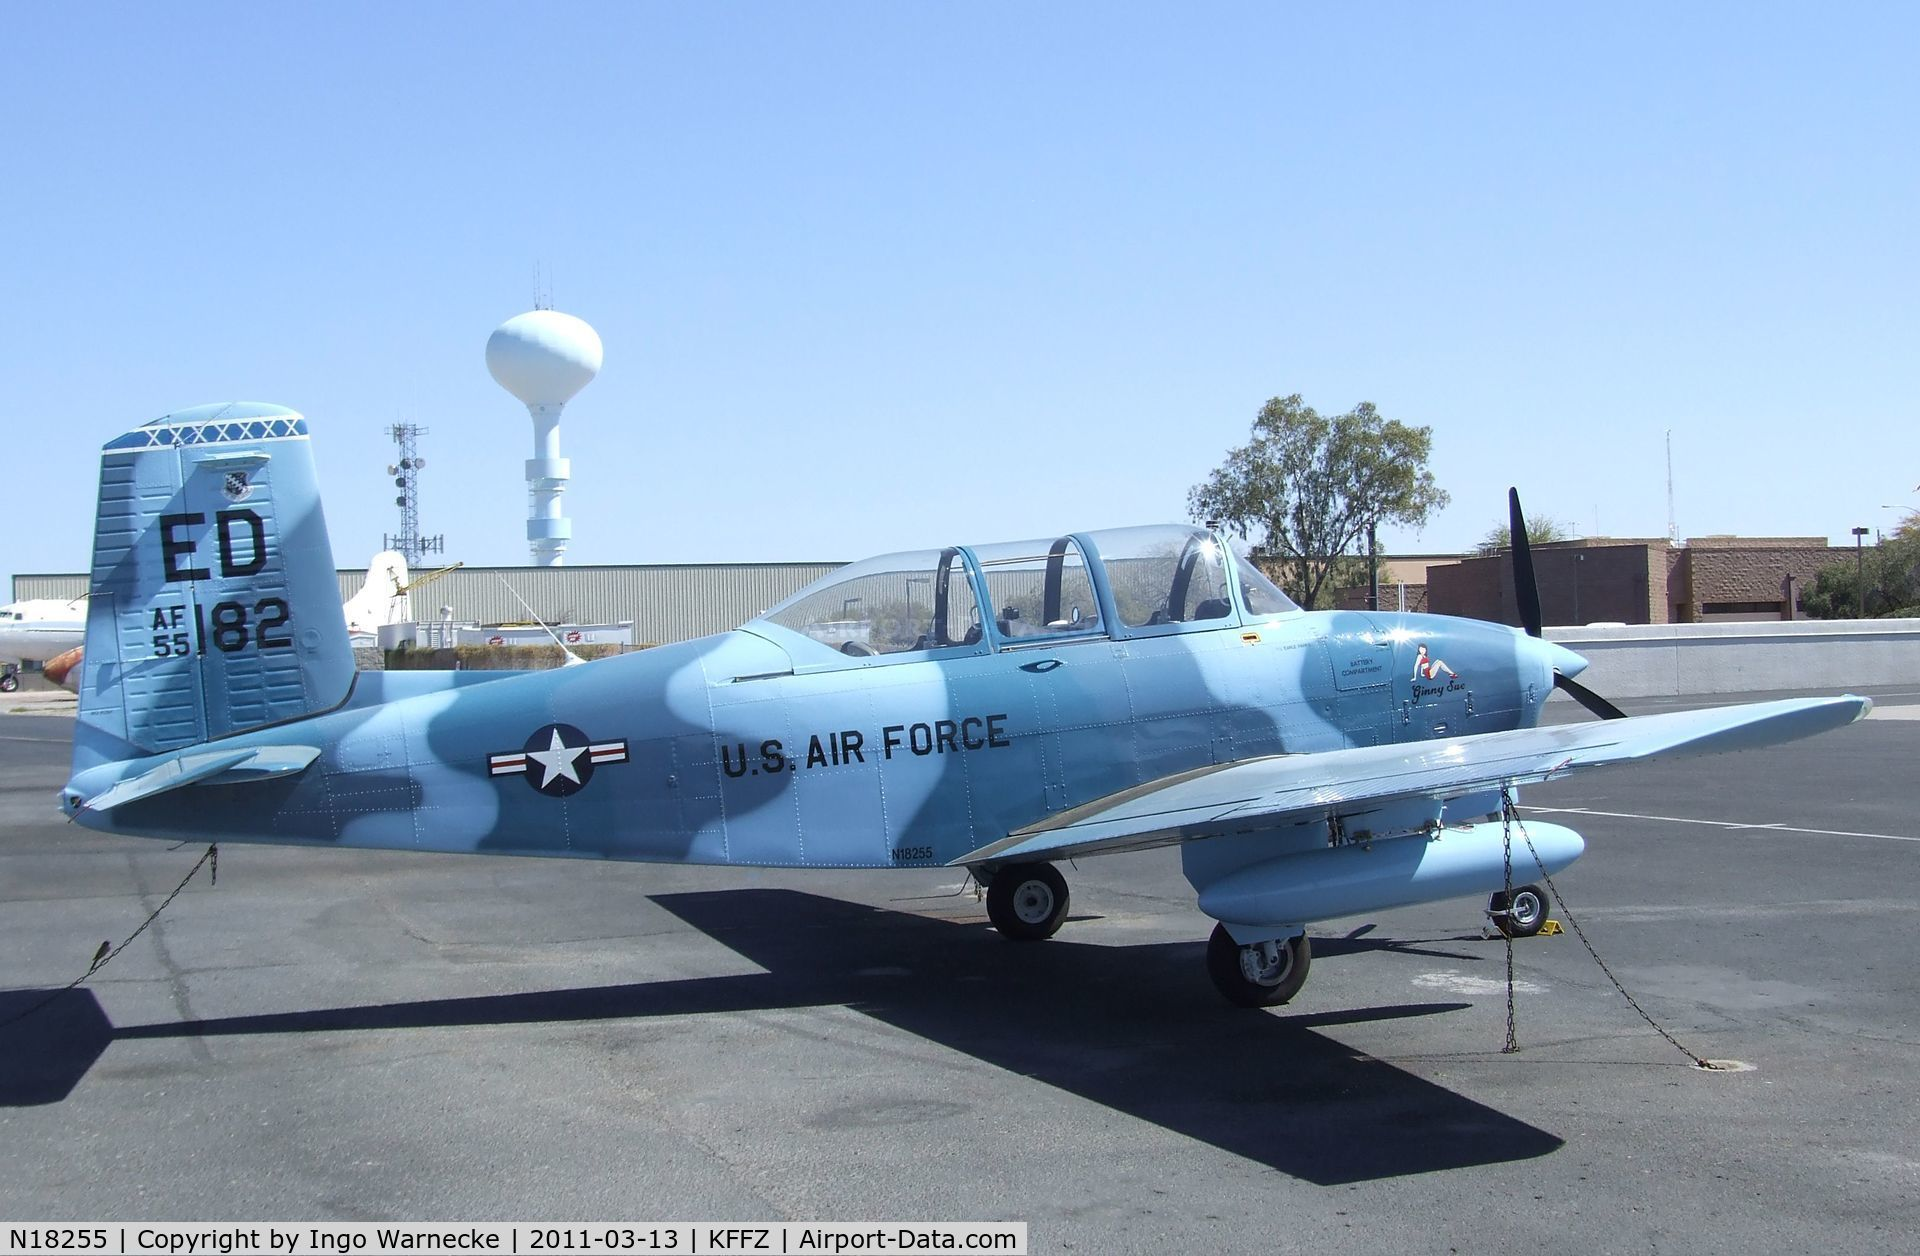 N18255, 1955 Beech A45 C/N G-739, Beechcraft A45 (T-34 Mentor) outside the CAF Museum at Falcon Field, Mesa AZ